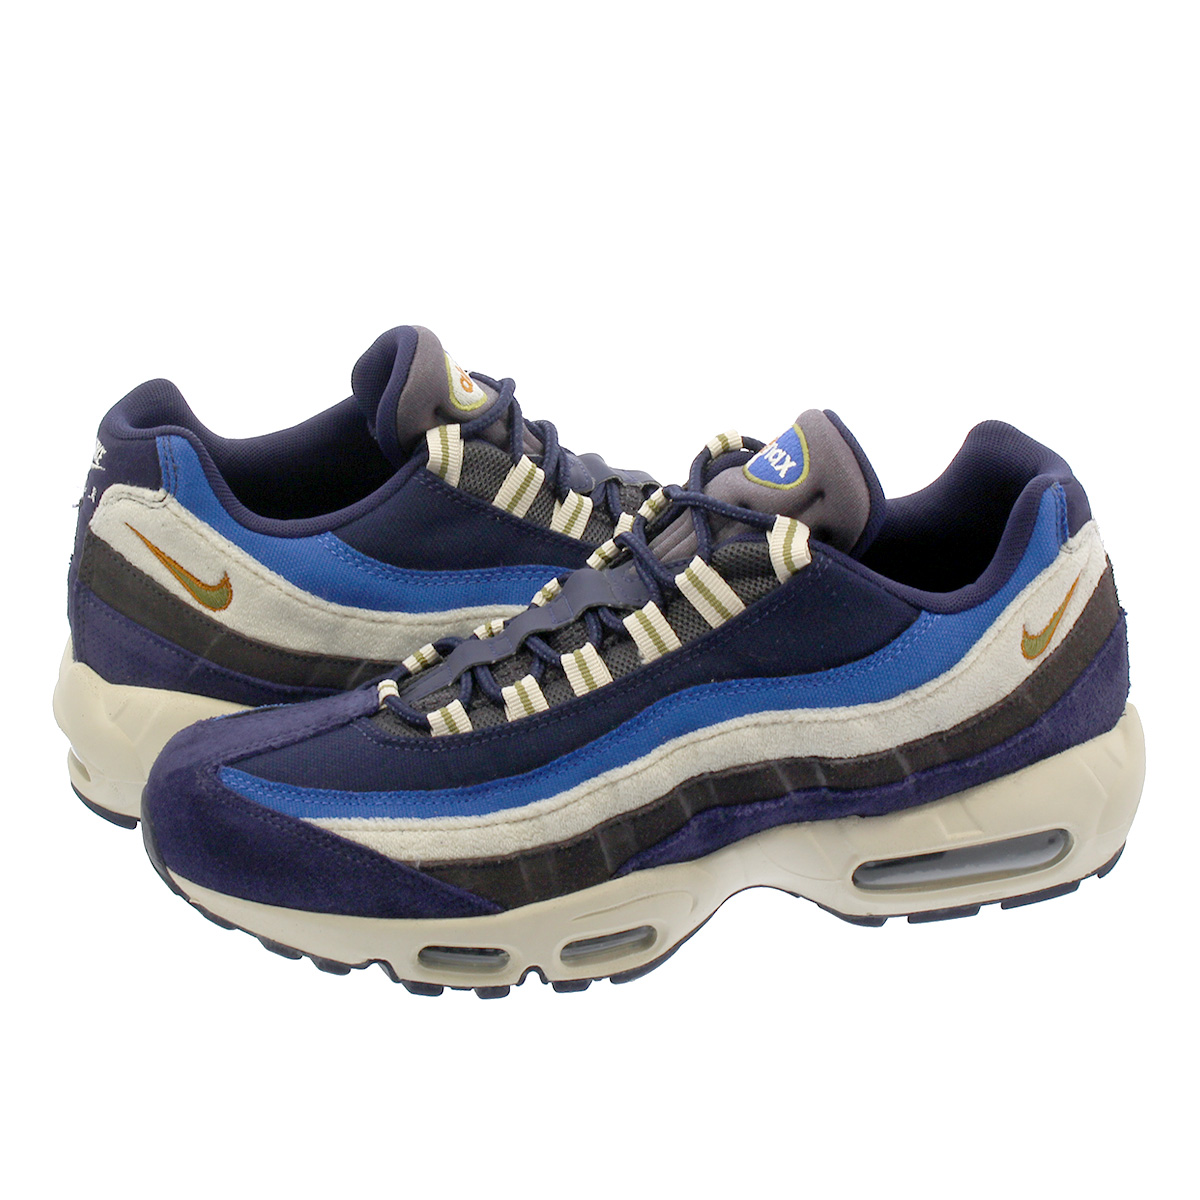 NIKE AIR MAX 95 PREMIUM Kie Ney AMAX 95 premium BLACKENED BLUE CAMPER  GREEN MONARCH 538 370089533